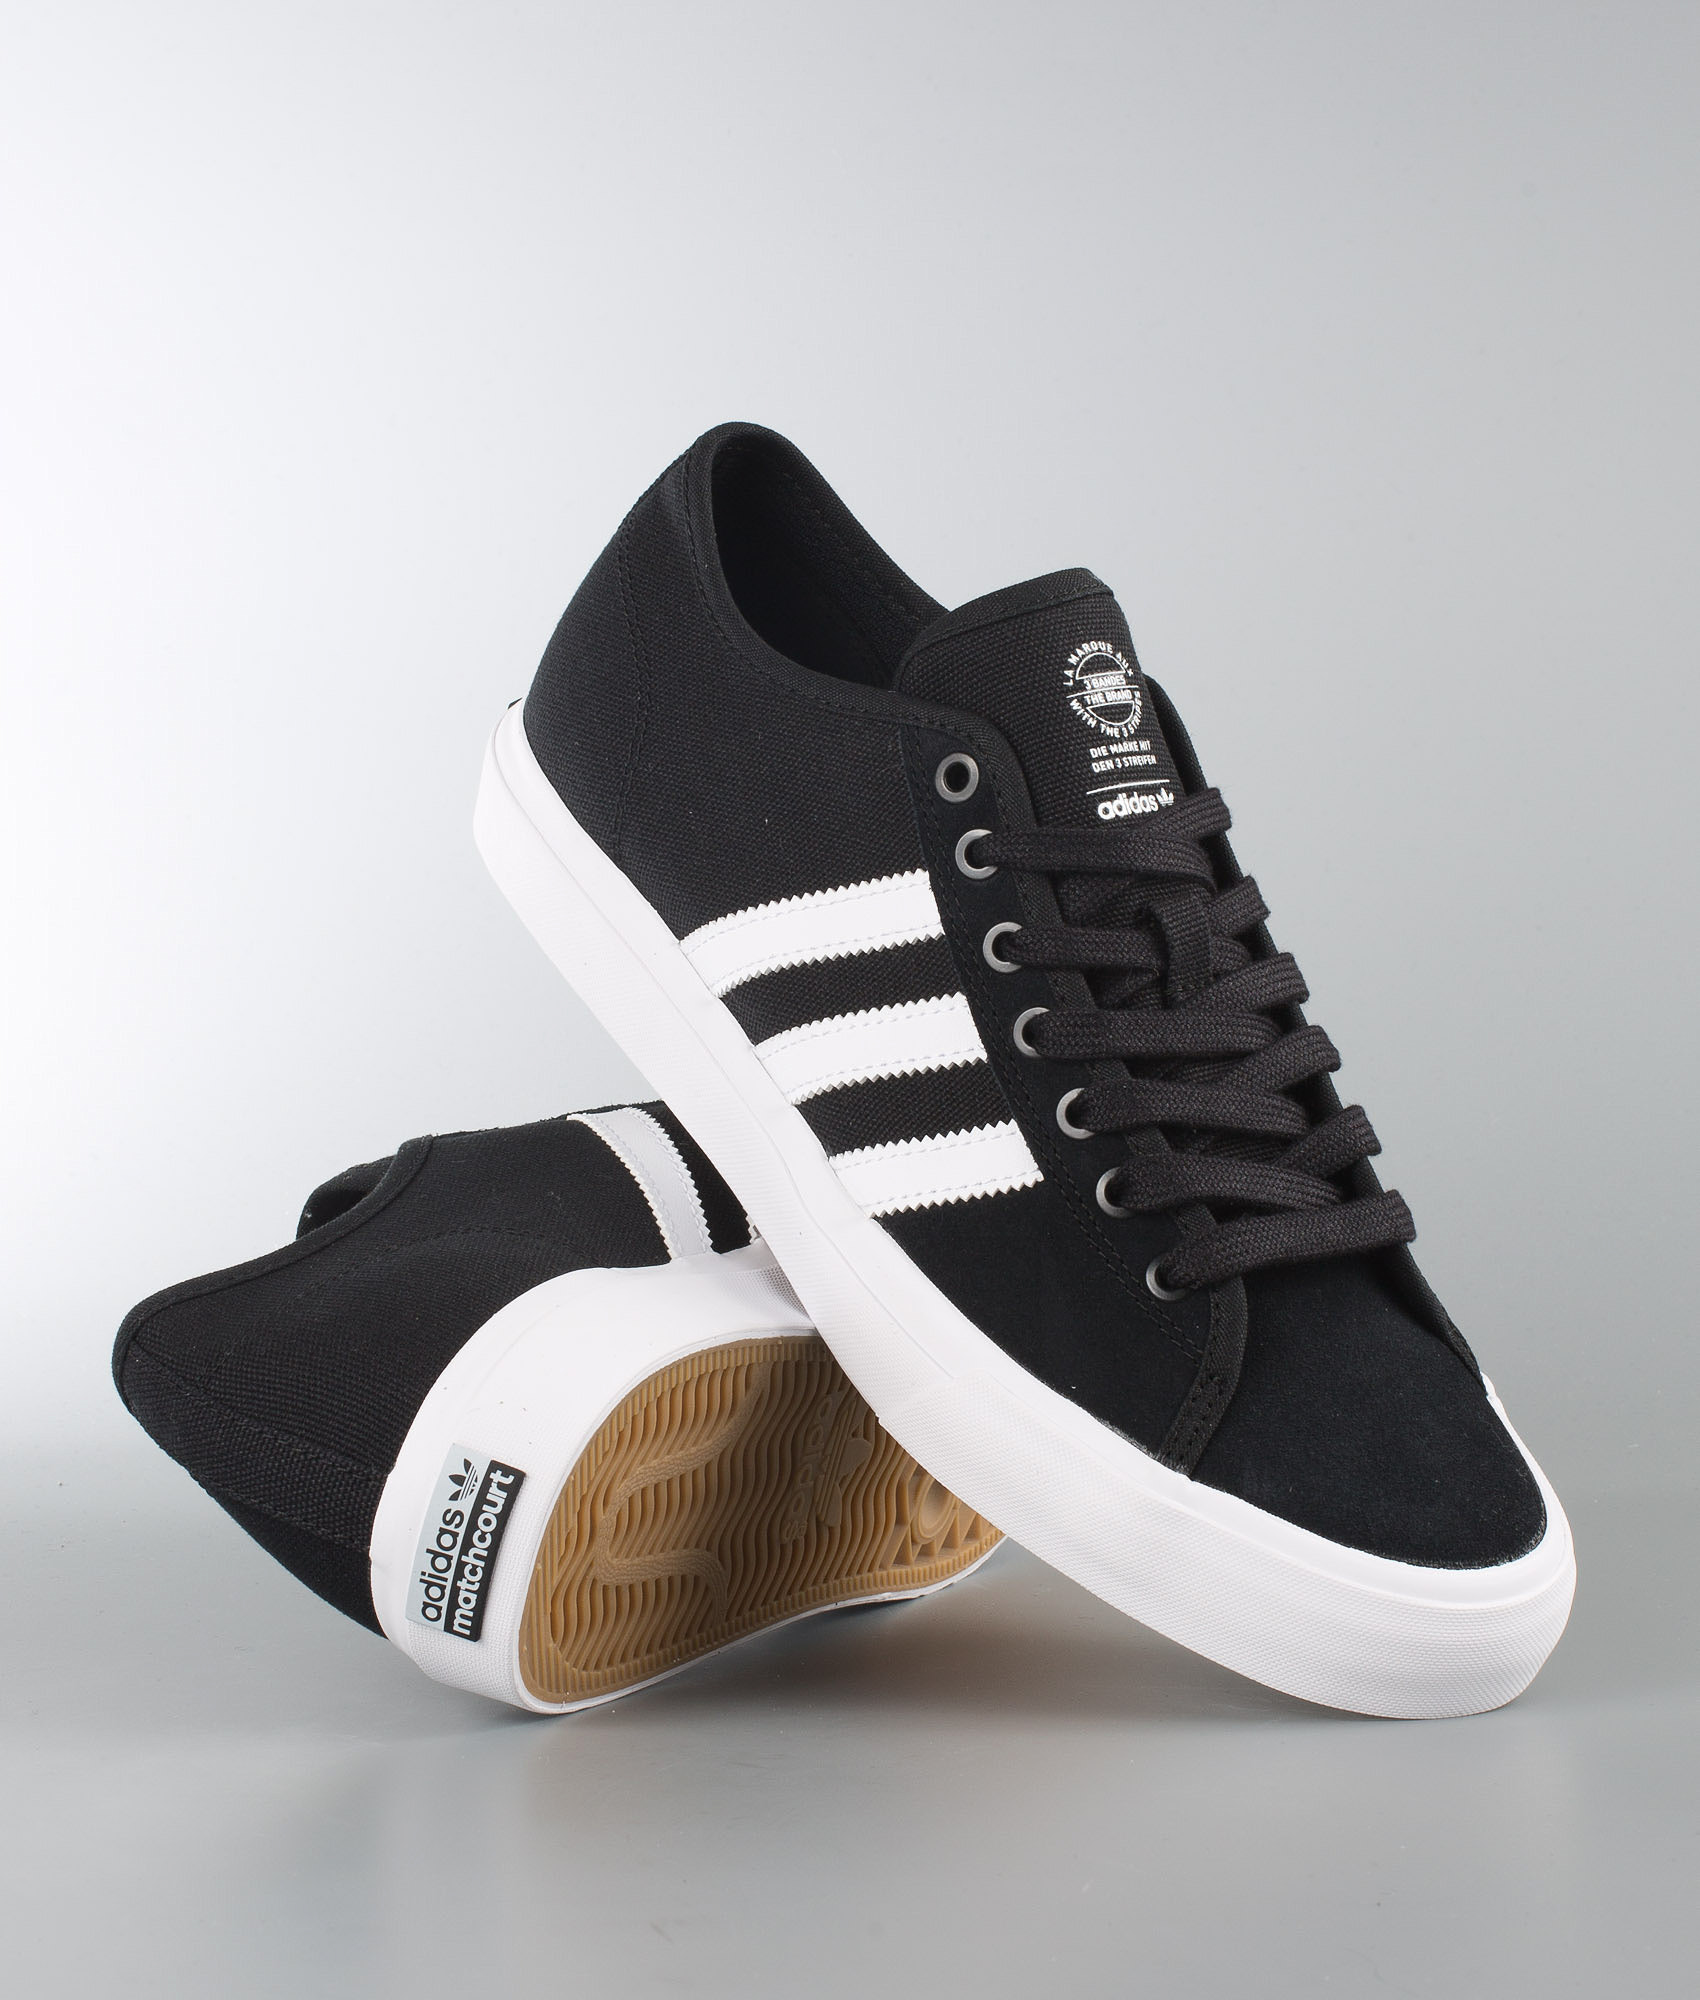 new style a2582 429ae Adidas Skateboarding Matchcourt Rx Chaussures